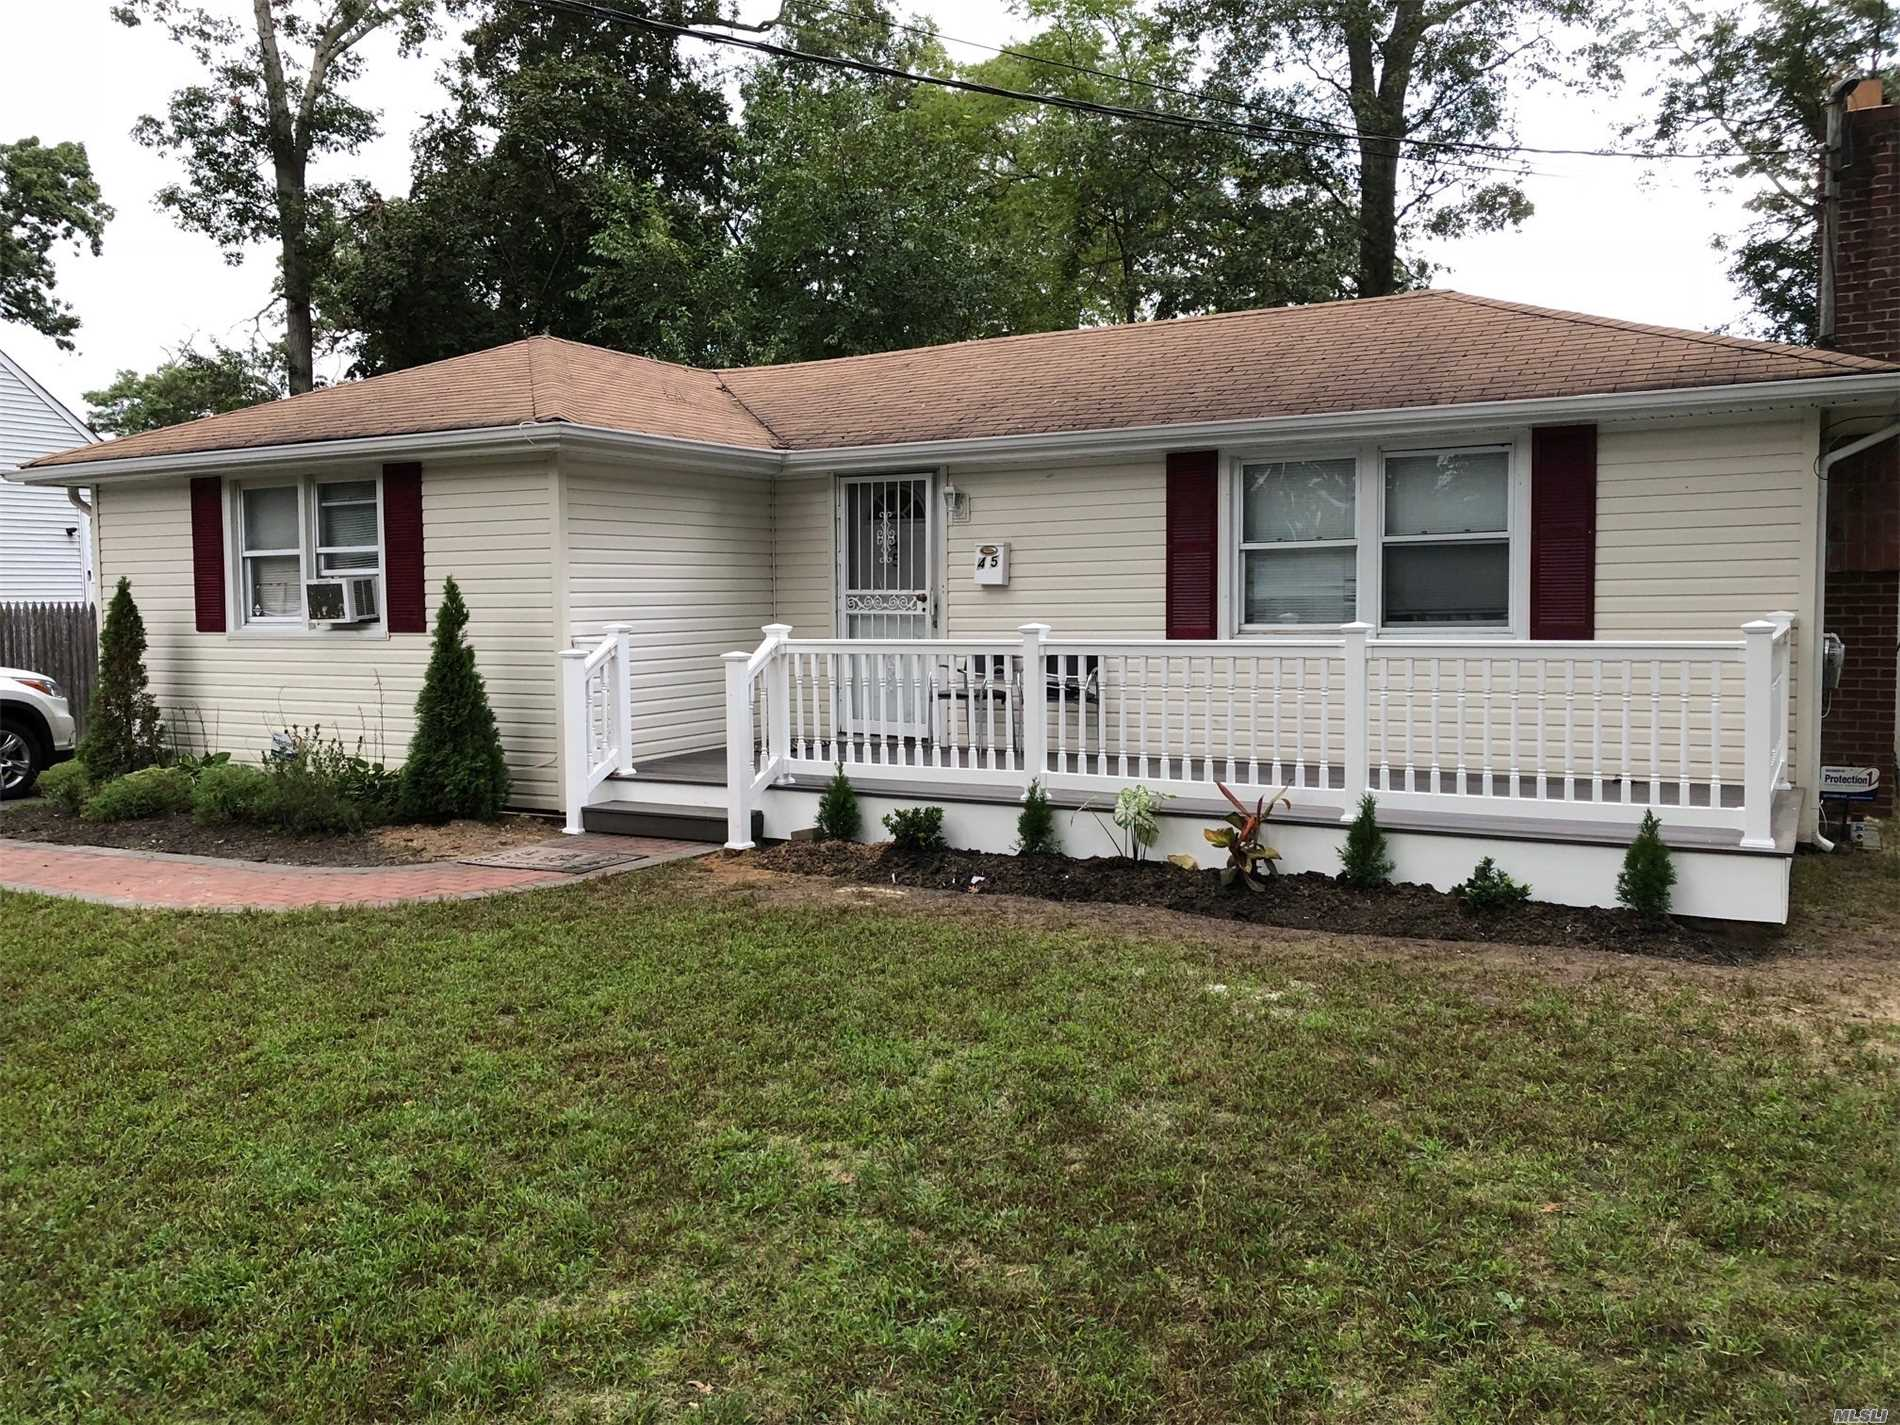 Beautiful Corner Lot, Close To Park. Boast Recently Updated Boiler, Hot Water Heater, Washer/Dryer As Well As Brand New Deck. Has Ig Sprinkler System & House Alarm. Low Taxes. Not A Short Sale!